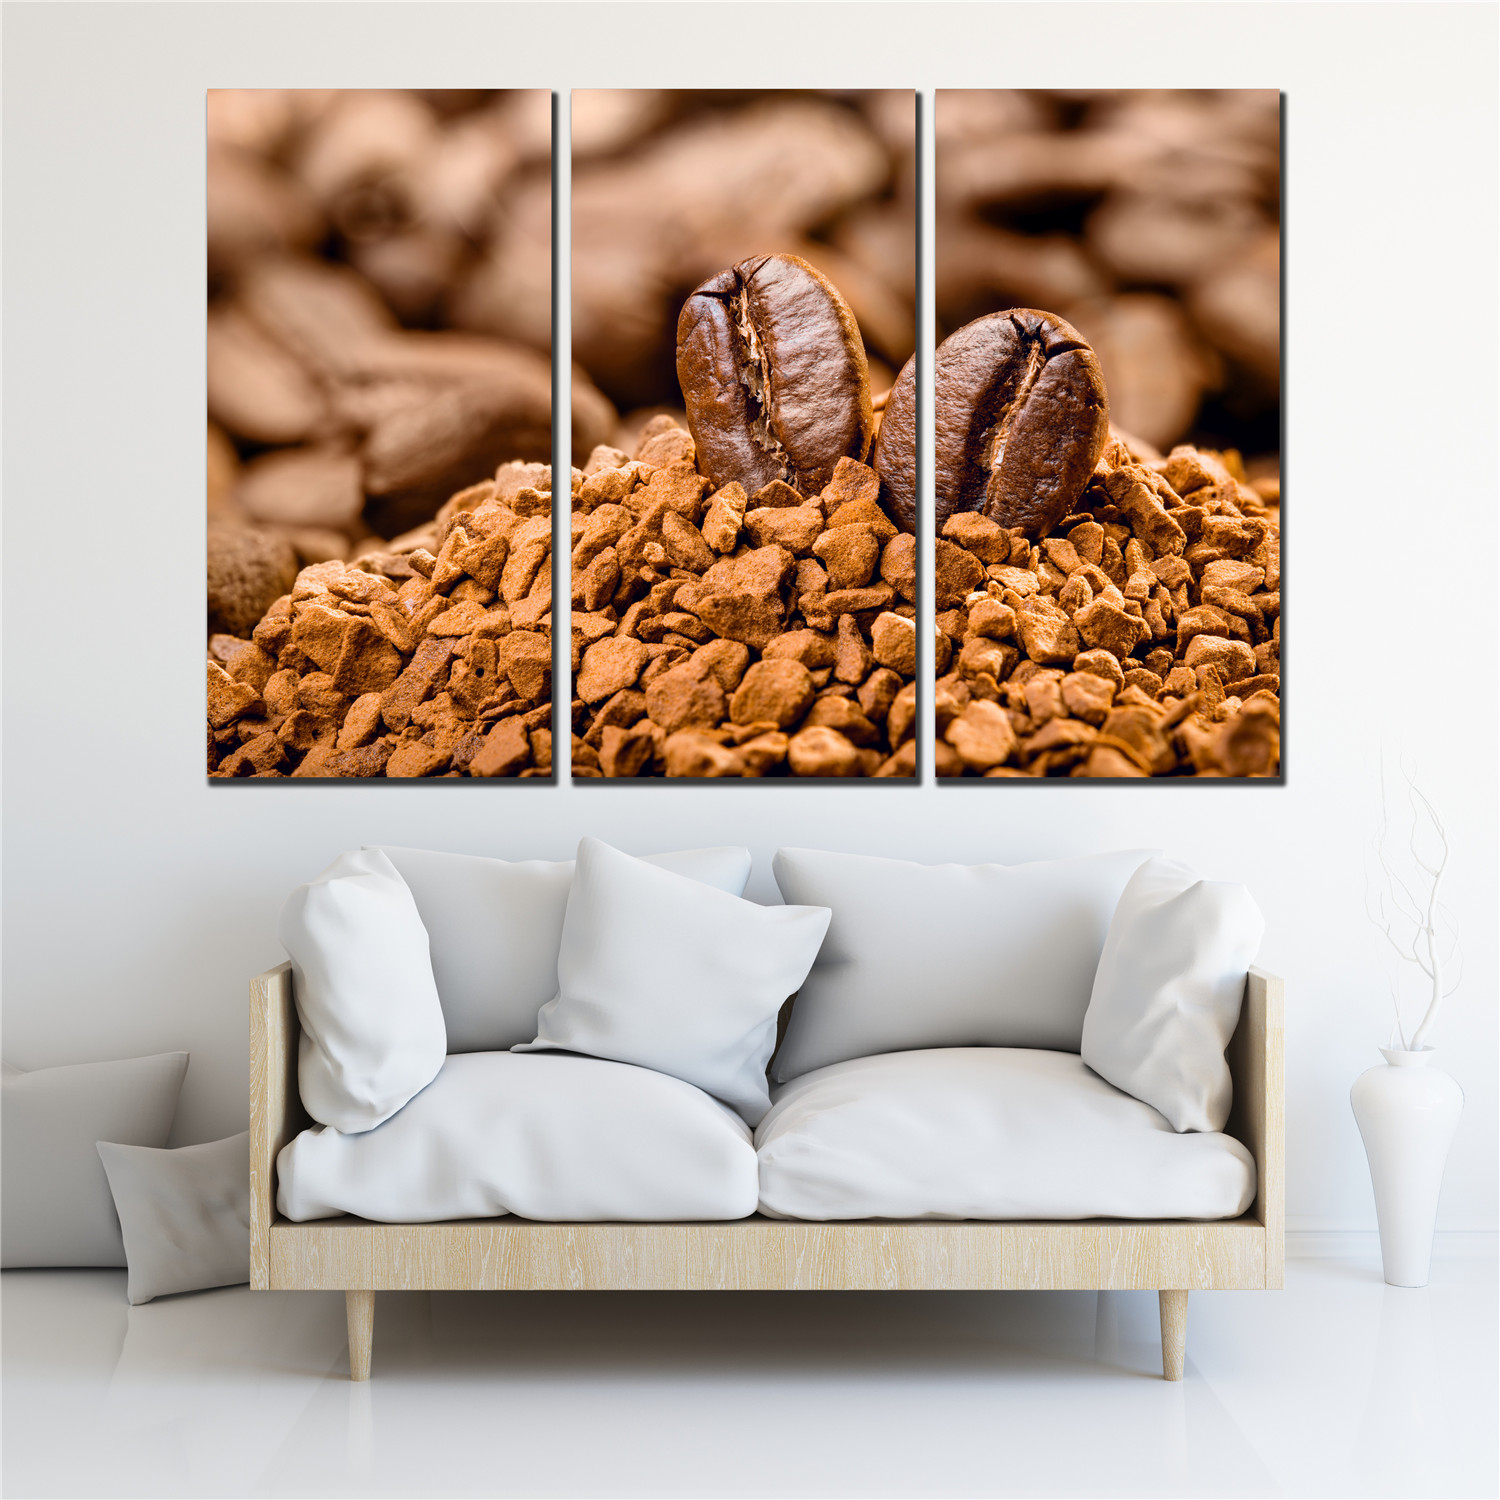 3 PCS beauty coffee bean canvas print painting for living room cuadros posters vintage poster canvas art wall pictures SL-055(China)